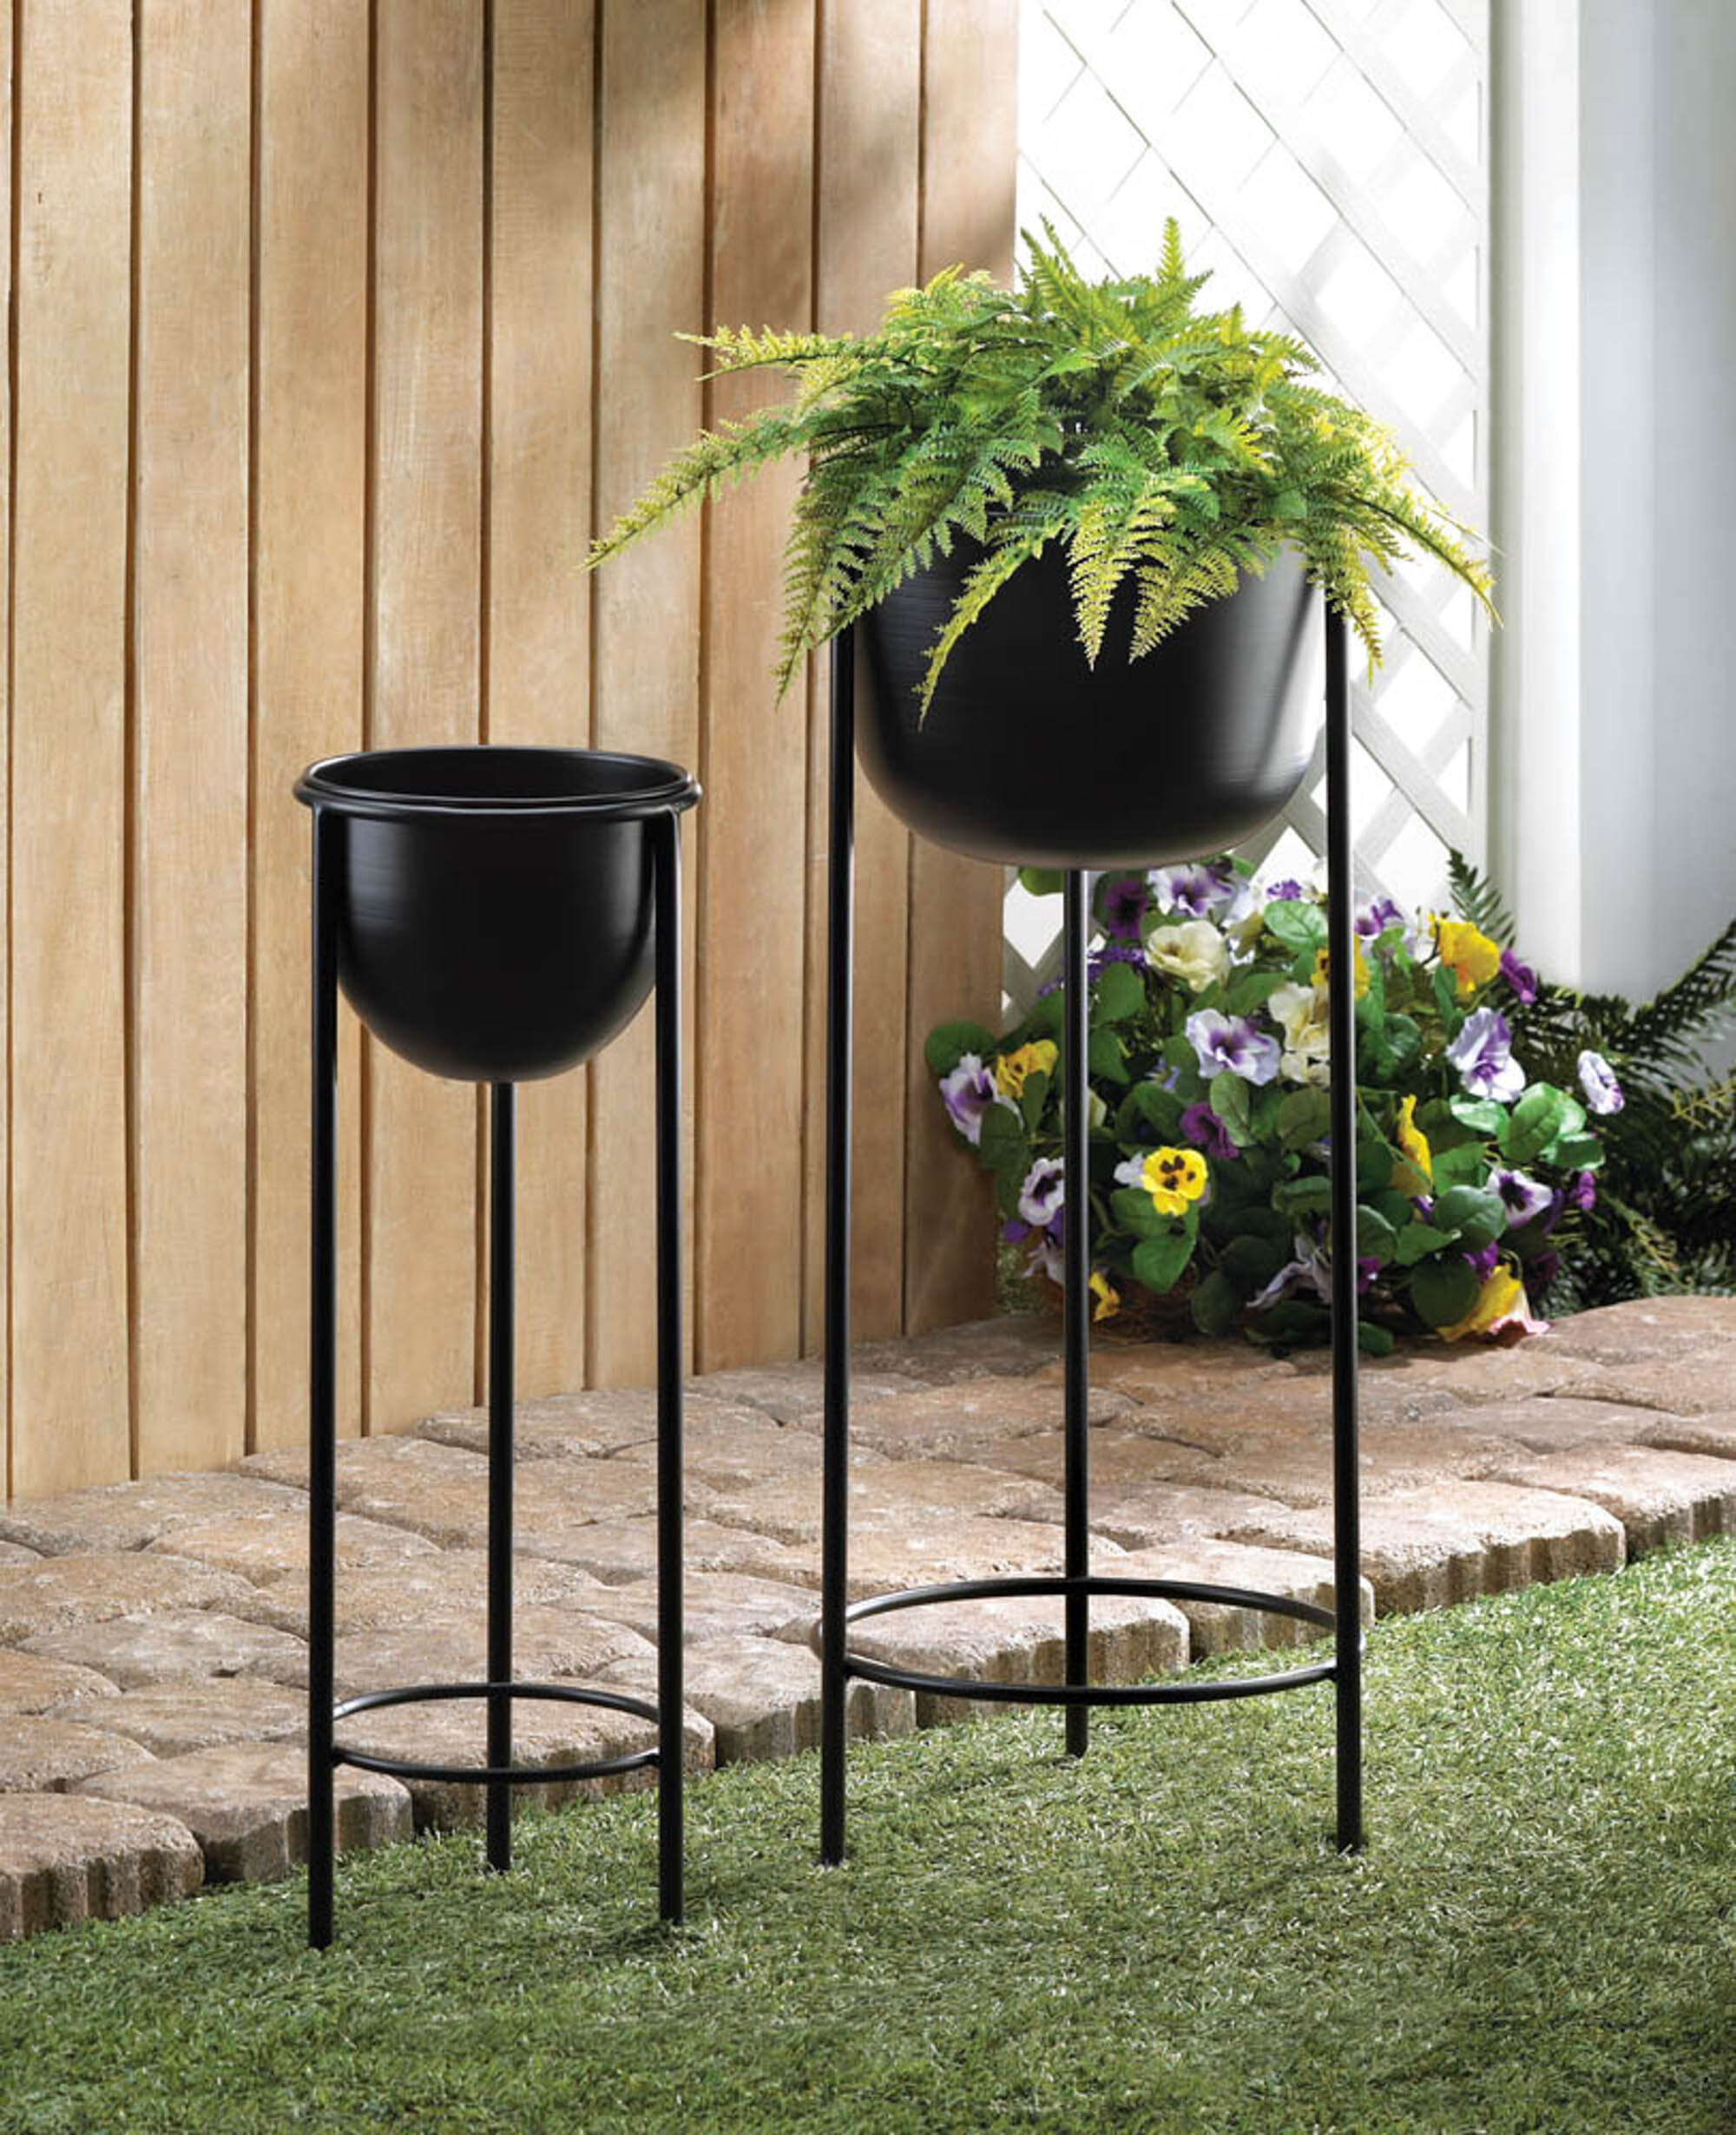 Metal Ebern Designs Plant Stands Tables You Ll Love In 2021 Wayfair